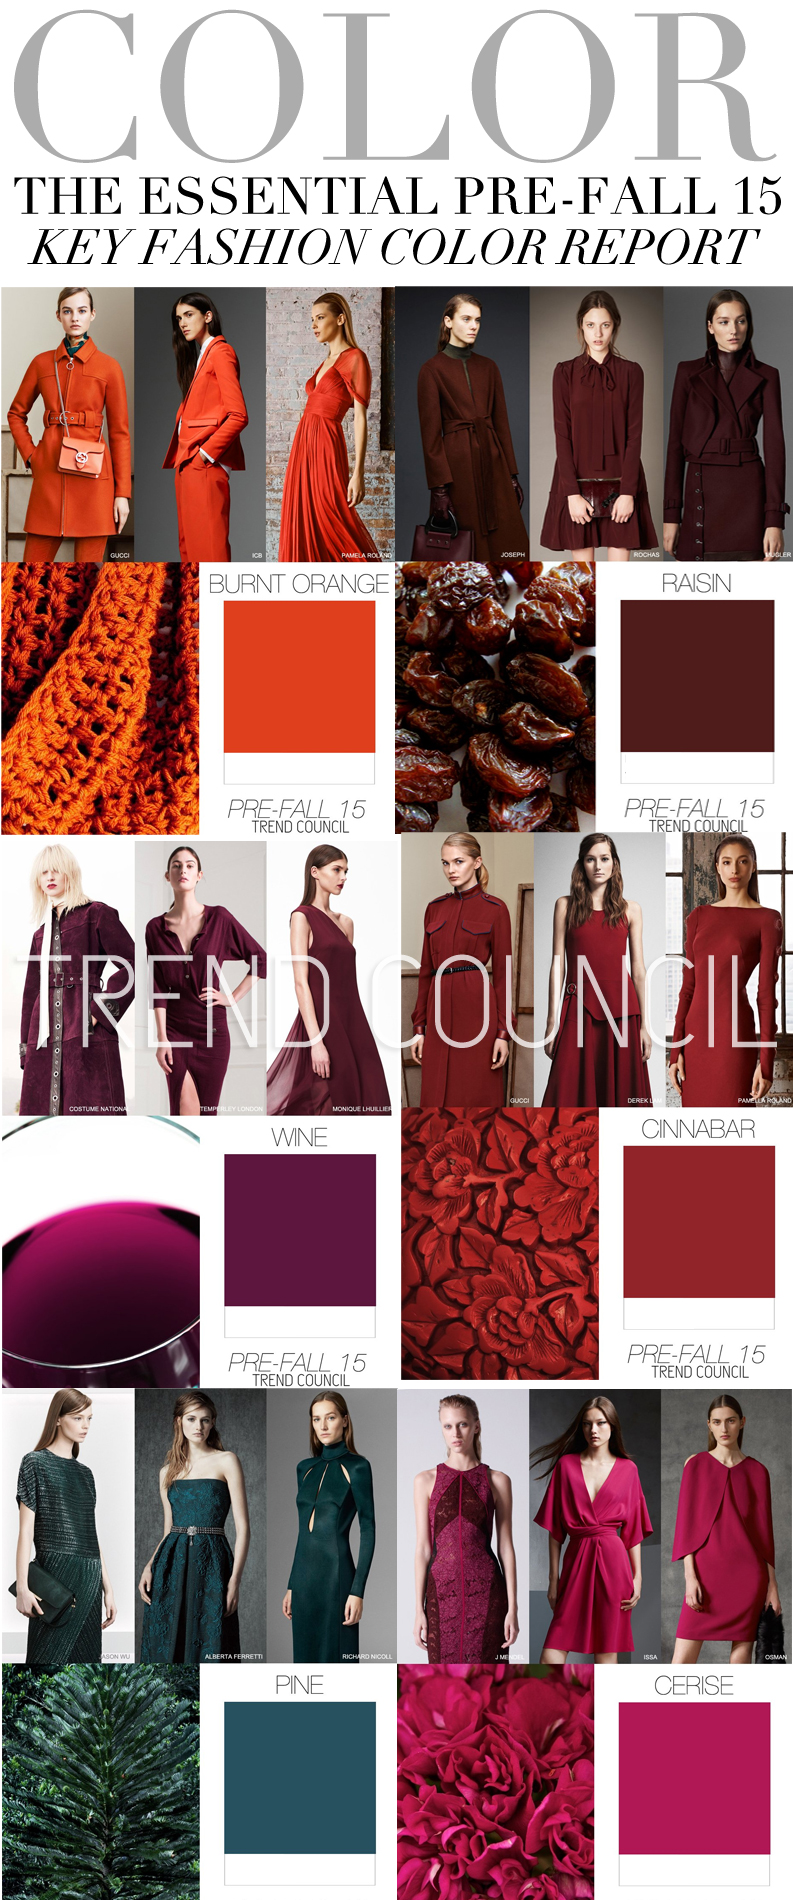 THE ESSENTIAL PRE FALL 15 KEY FASHION COLOR REPORT